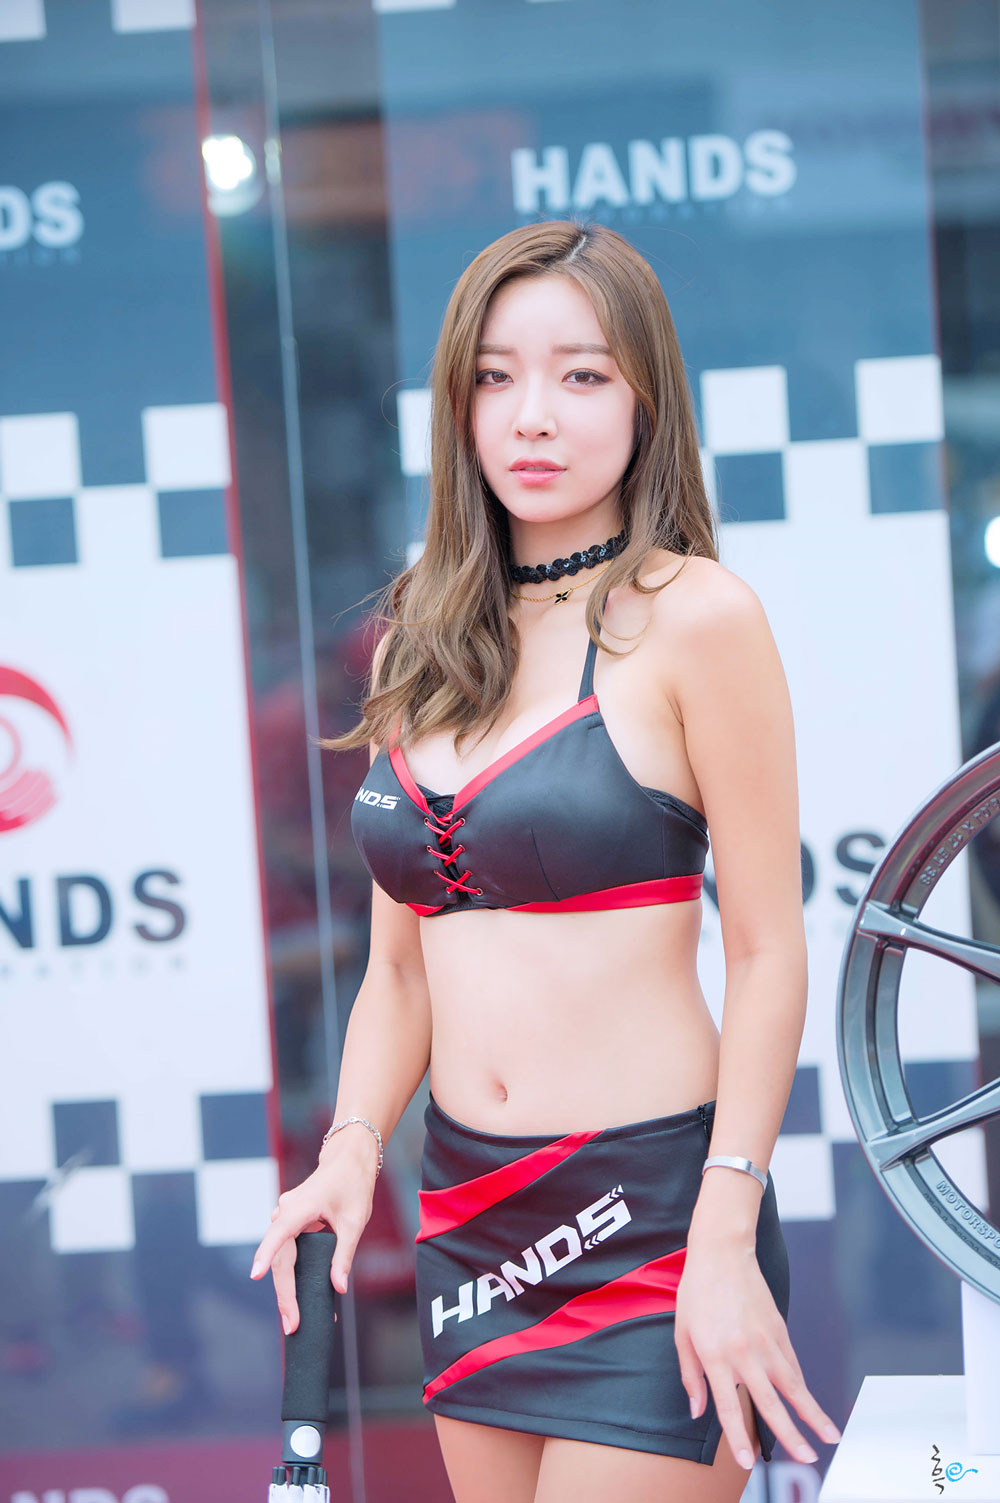 Kim Ha Na Hands Motorsport Festival 2015